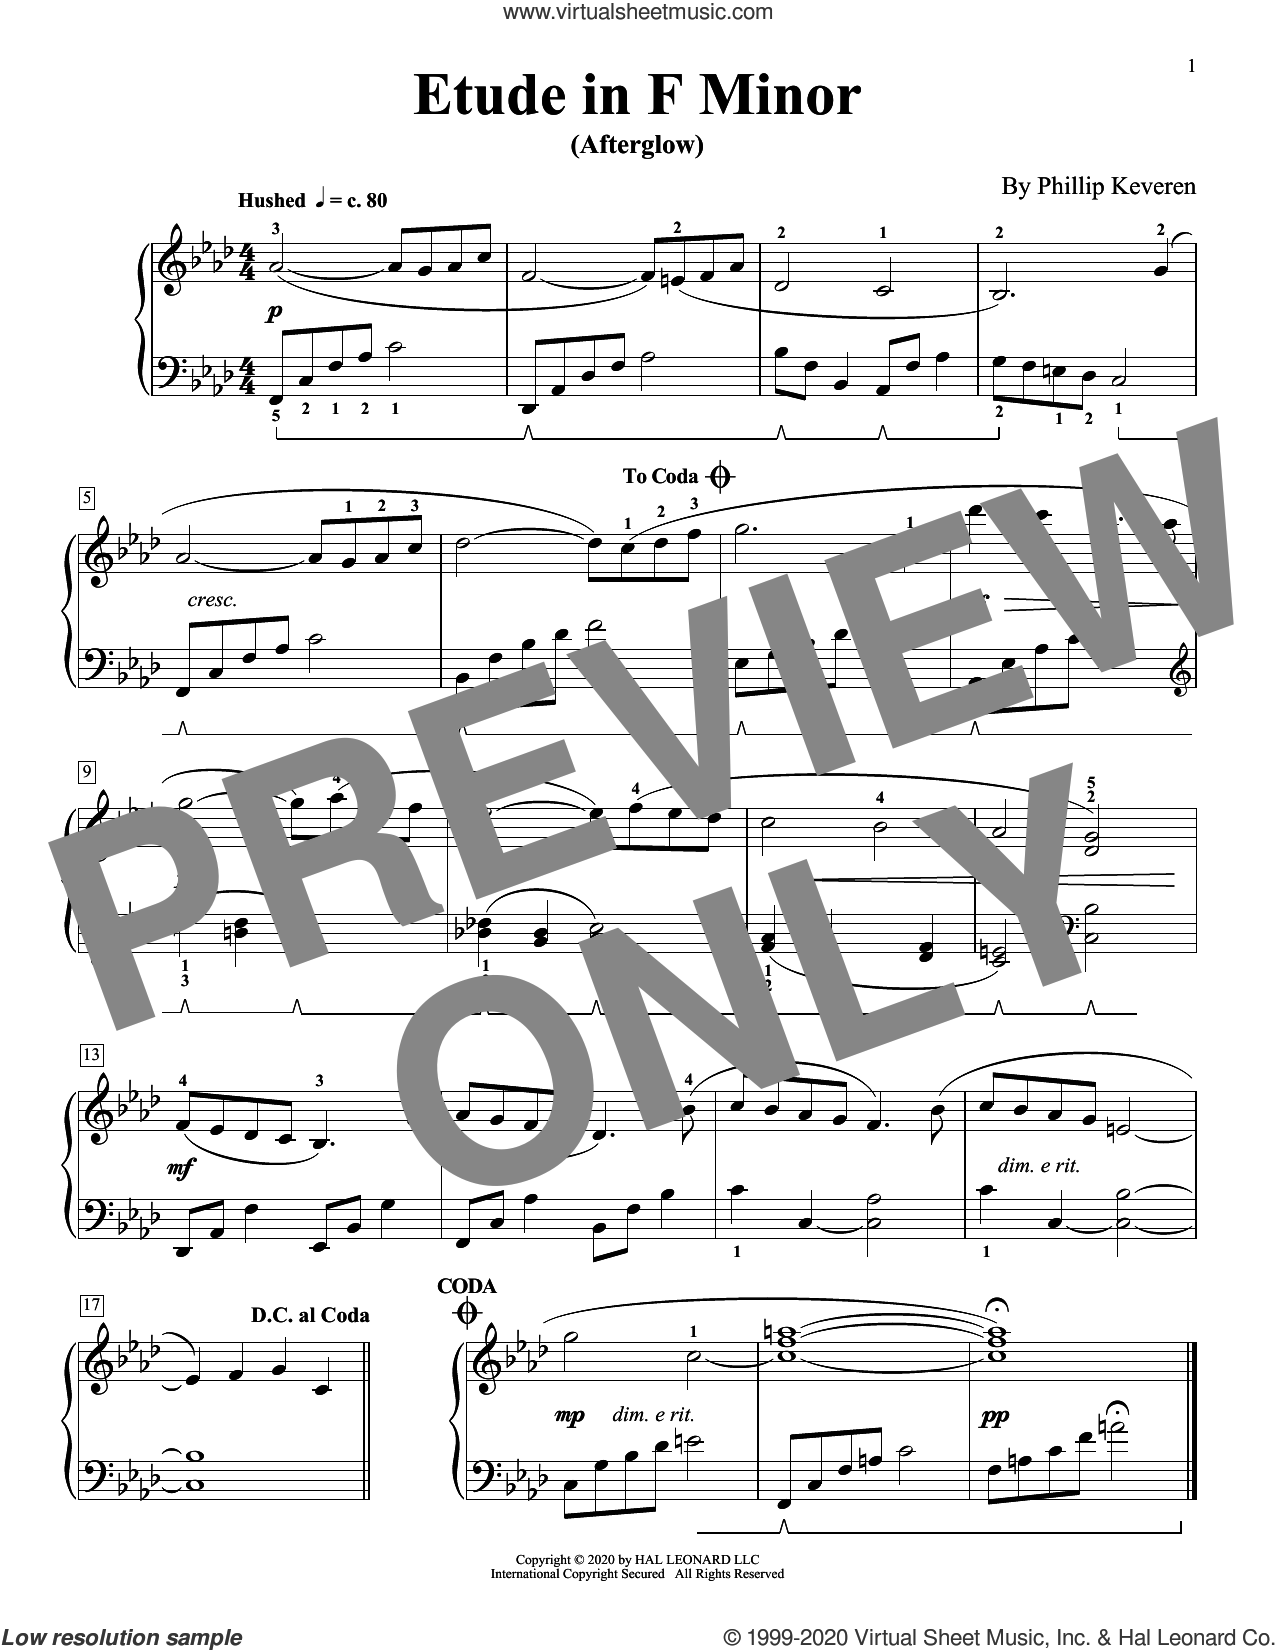 Etude In F Minor (Afterglow) sheet music for piano solo by Phillip Keveren, classical score, intermediate skill level